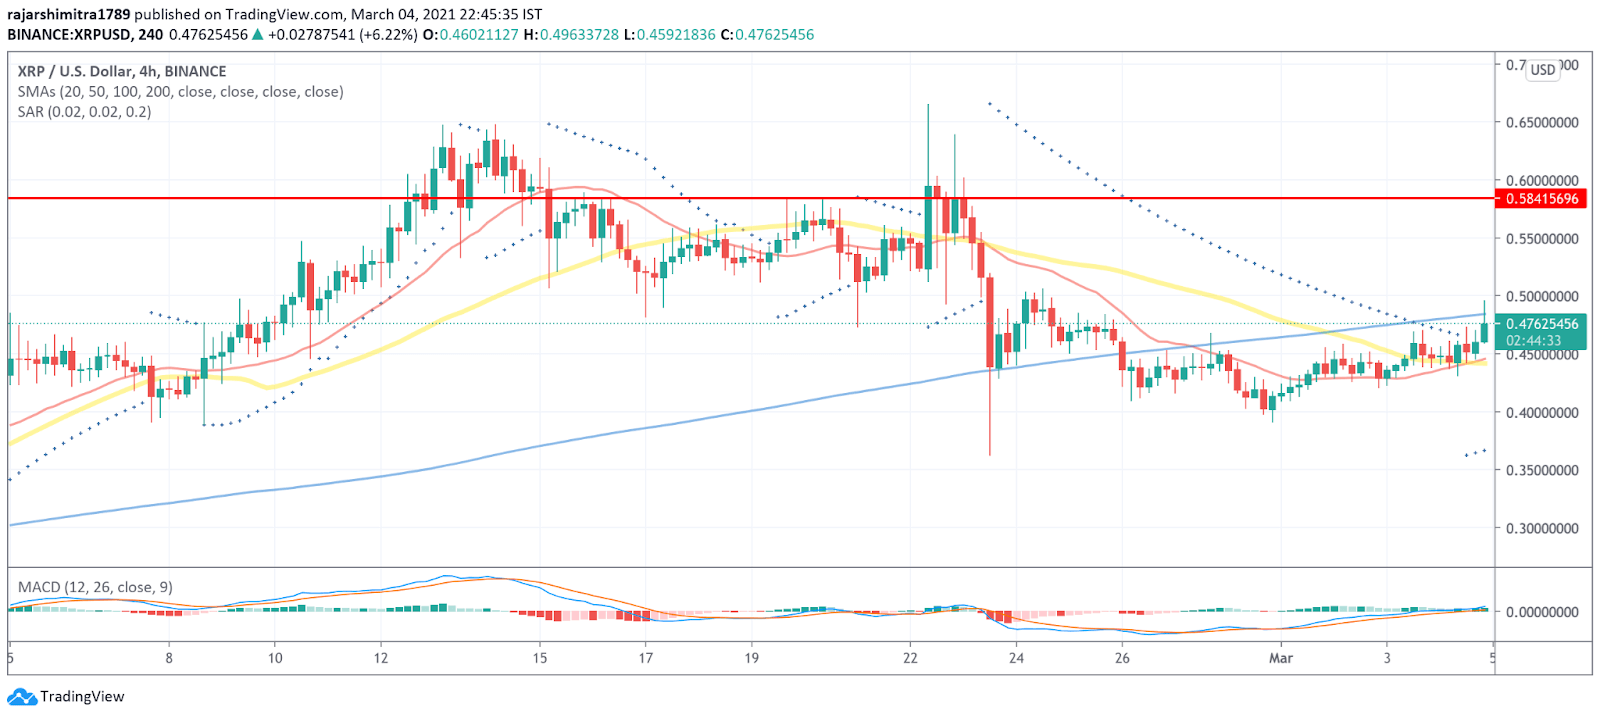 xrp/usd 4-hour chart 030521